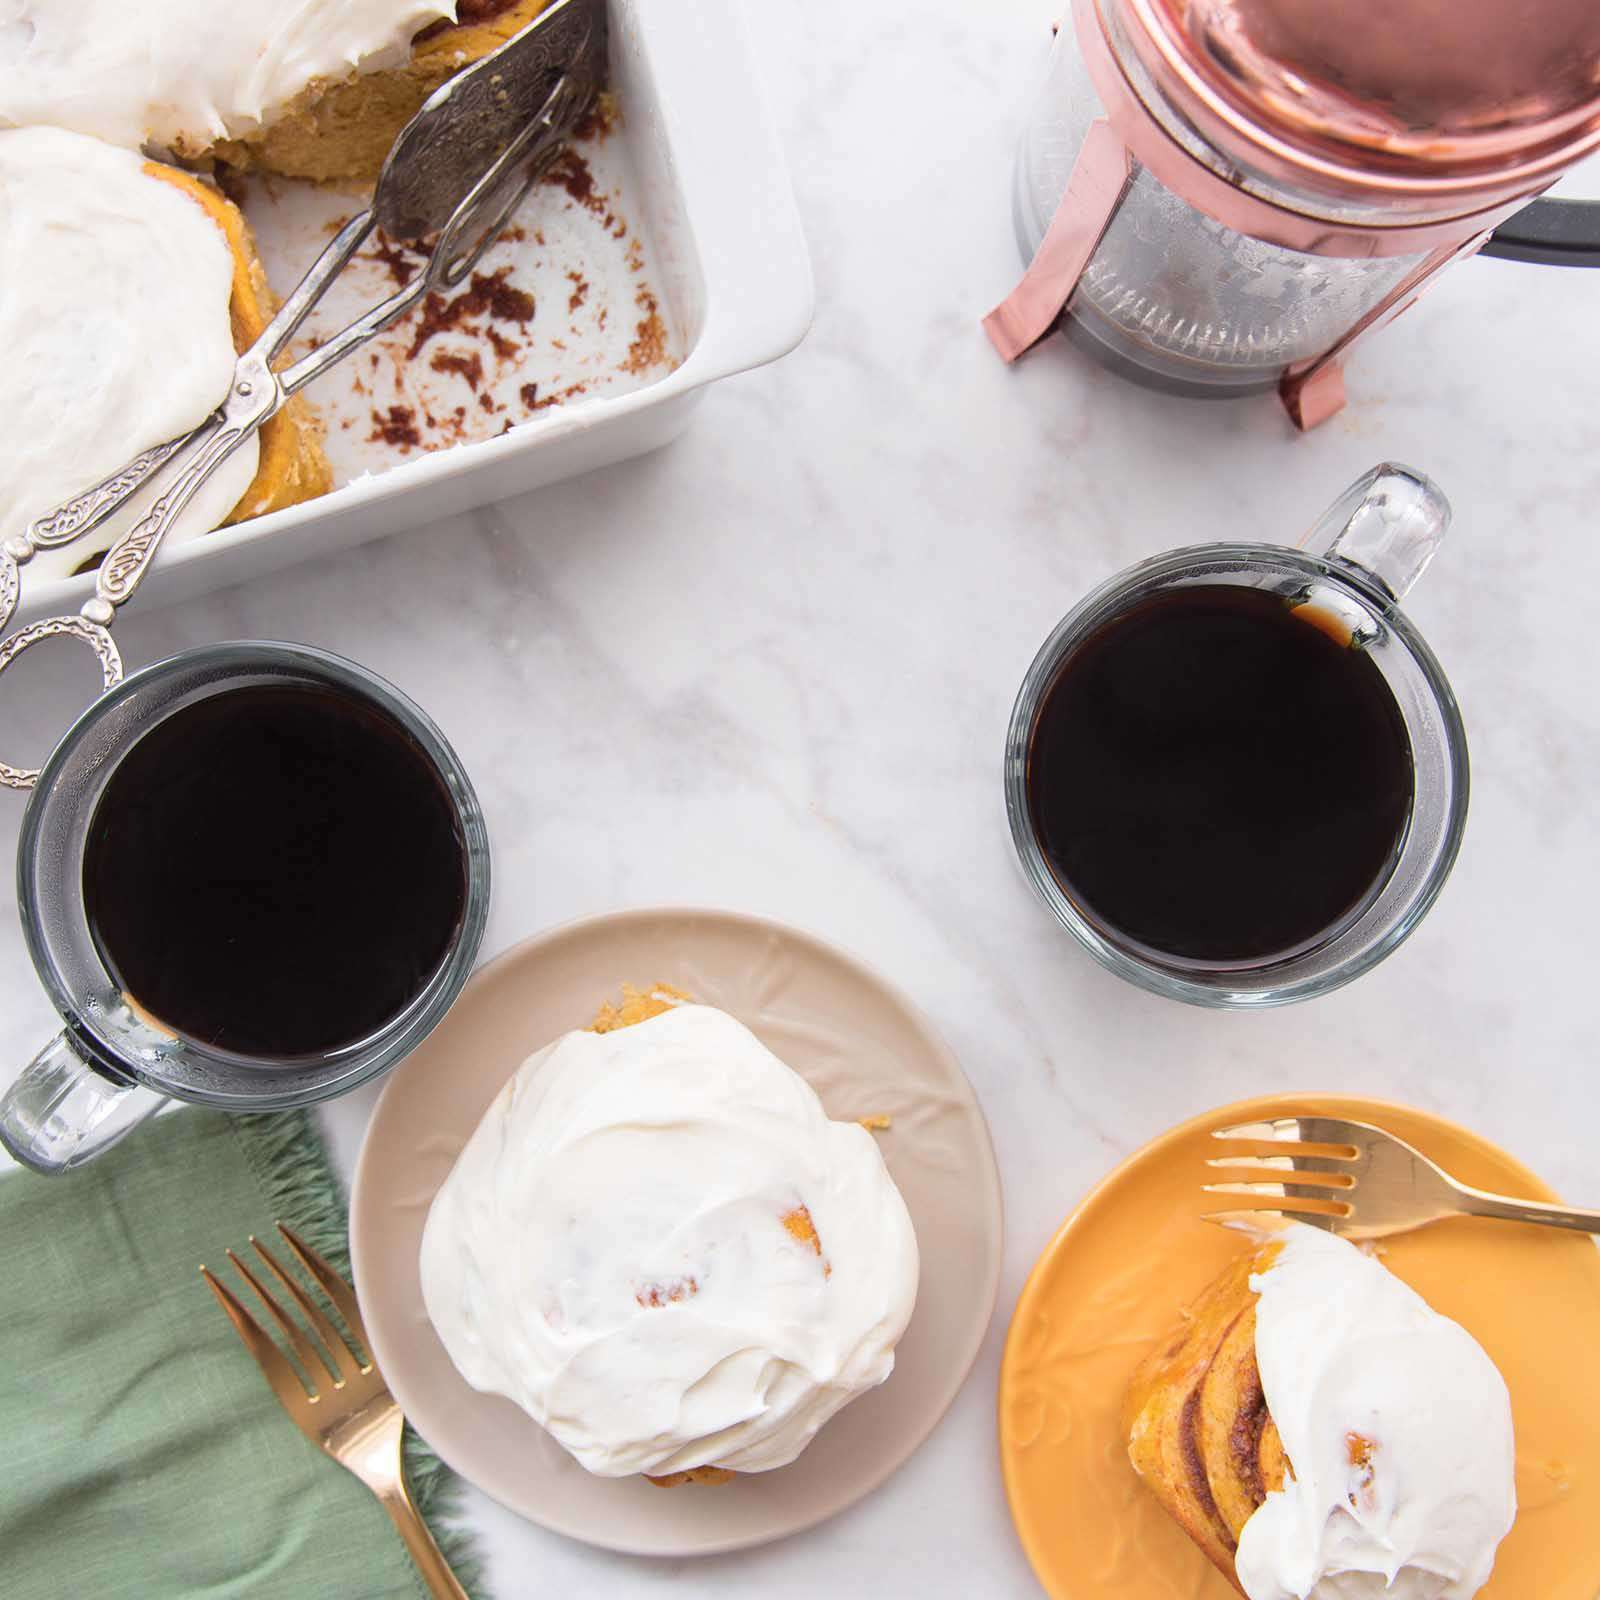 Overhead view of a table with Homemade Pumpkin Cinnamon Rolls served on plates with coffee, a french press, and the remaining rolls above the plates.